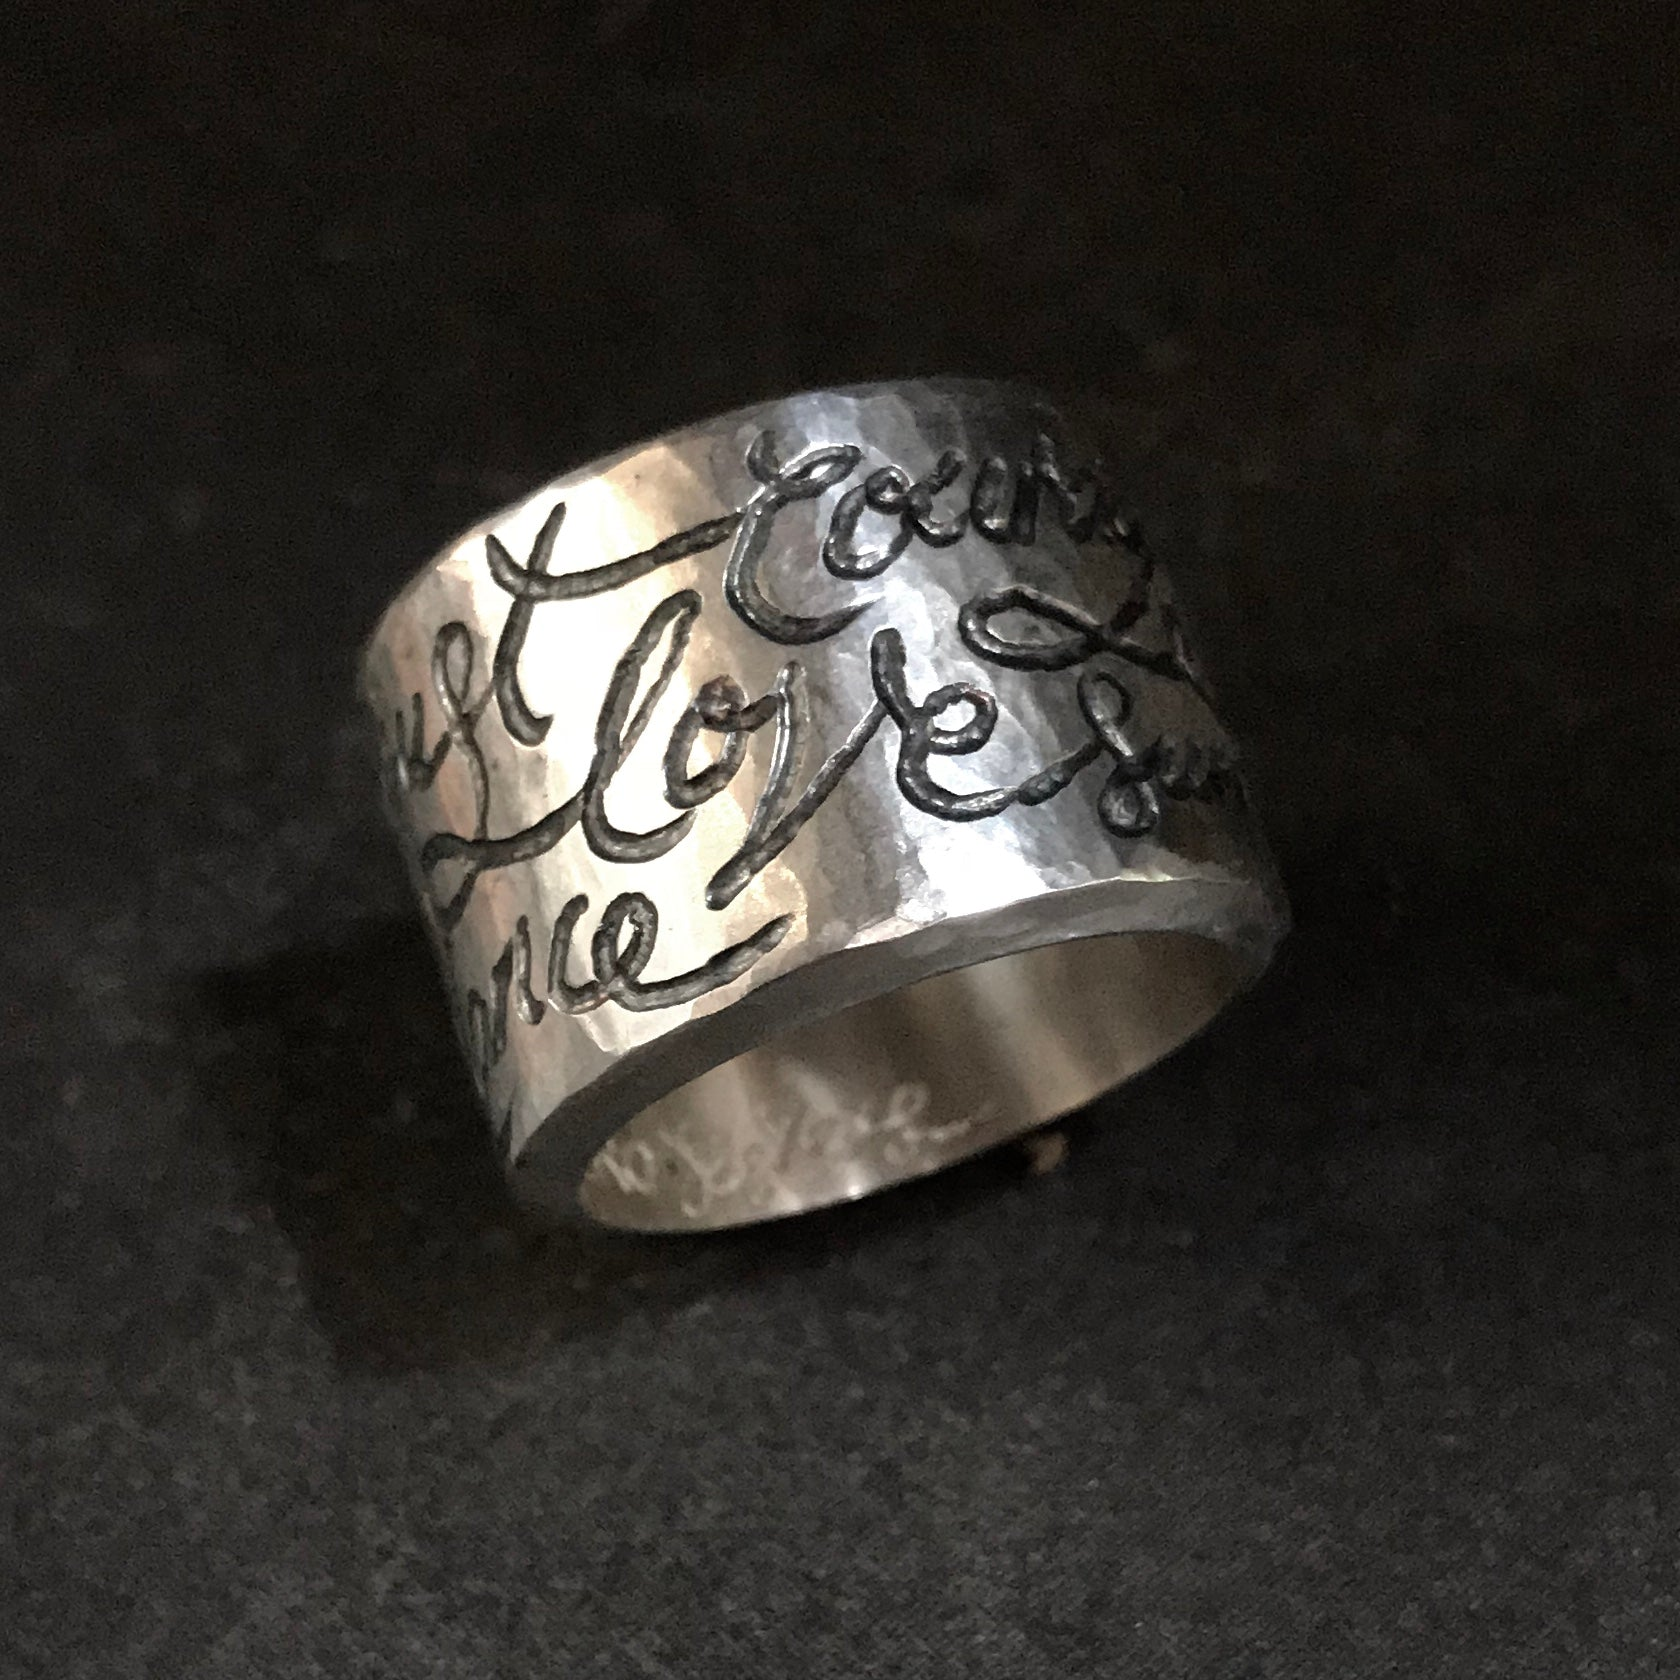 HERO's Life Ring  by herosisters - Luxury handmade silver jewelry and accessories